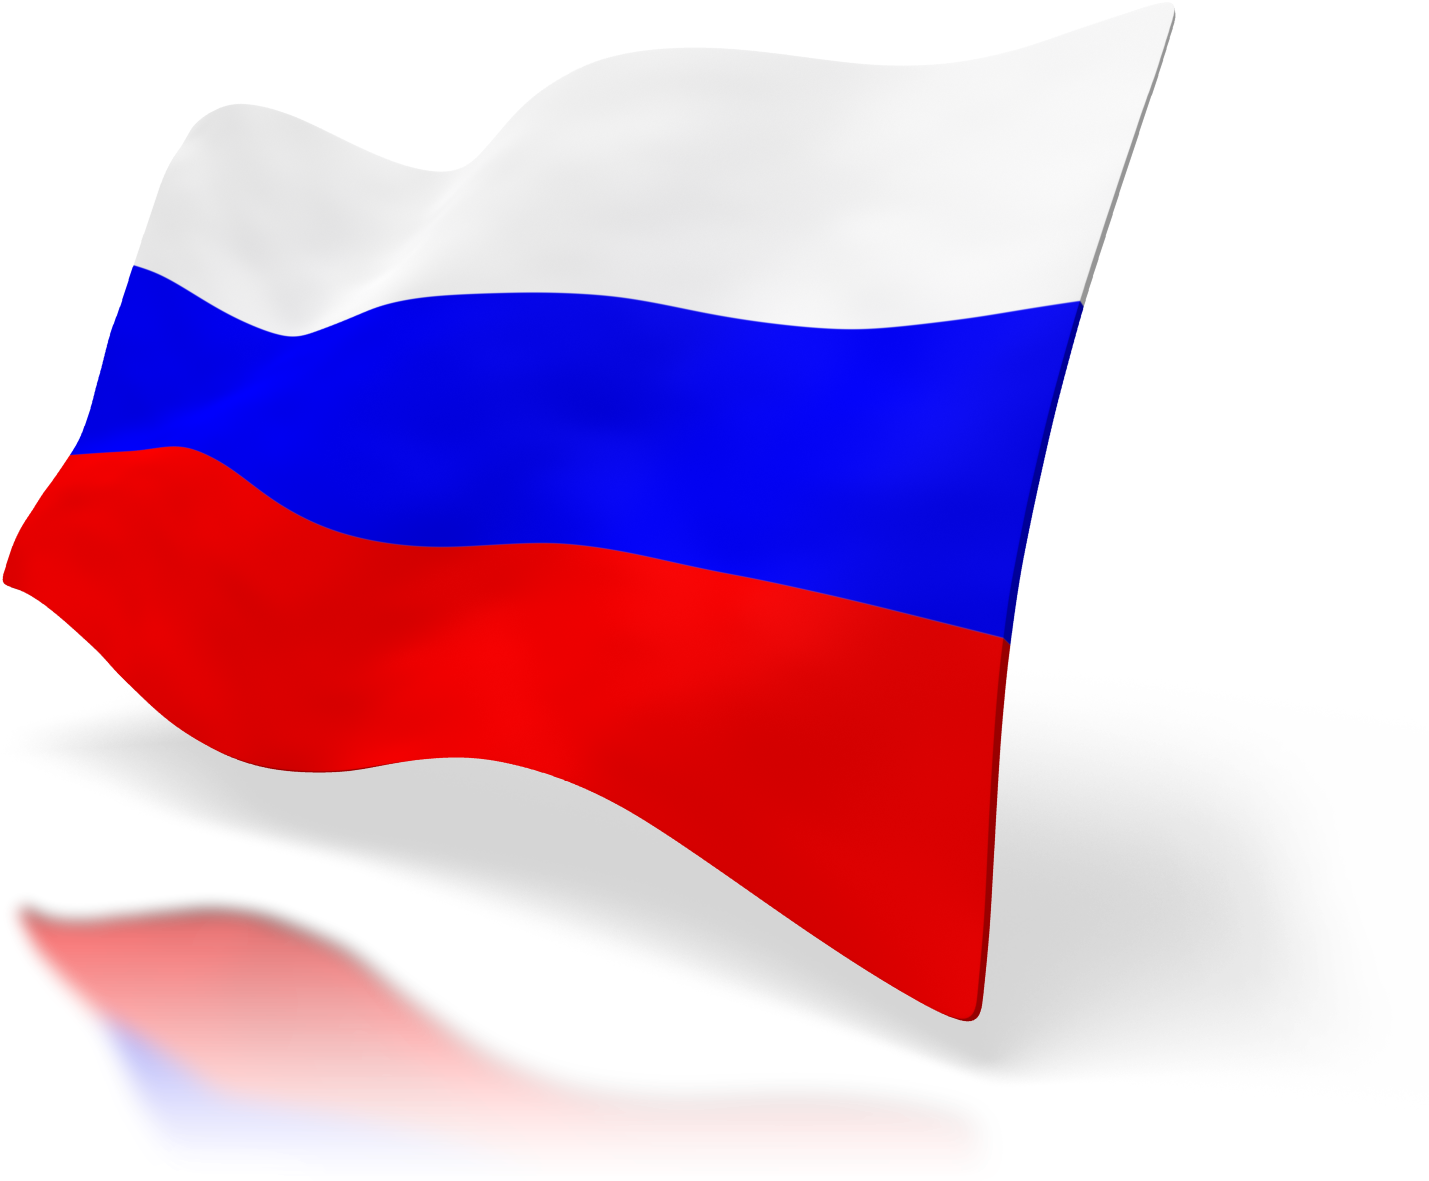 Russia flag png. Download picture image with